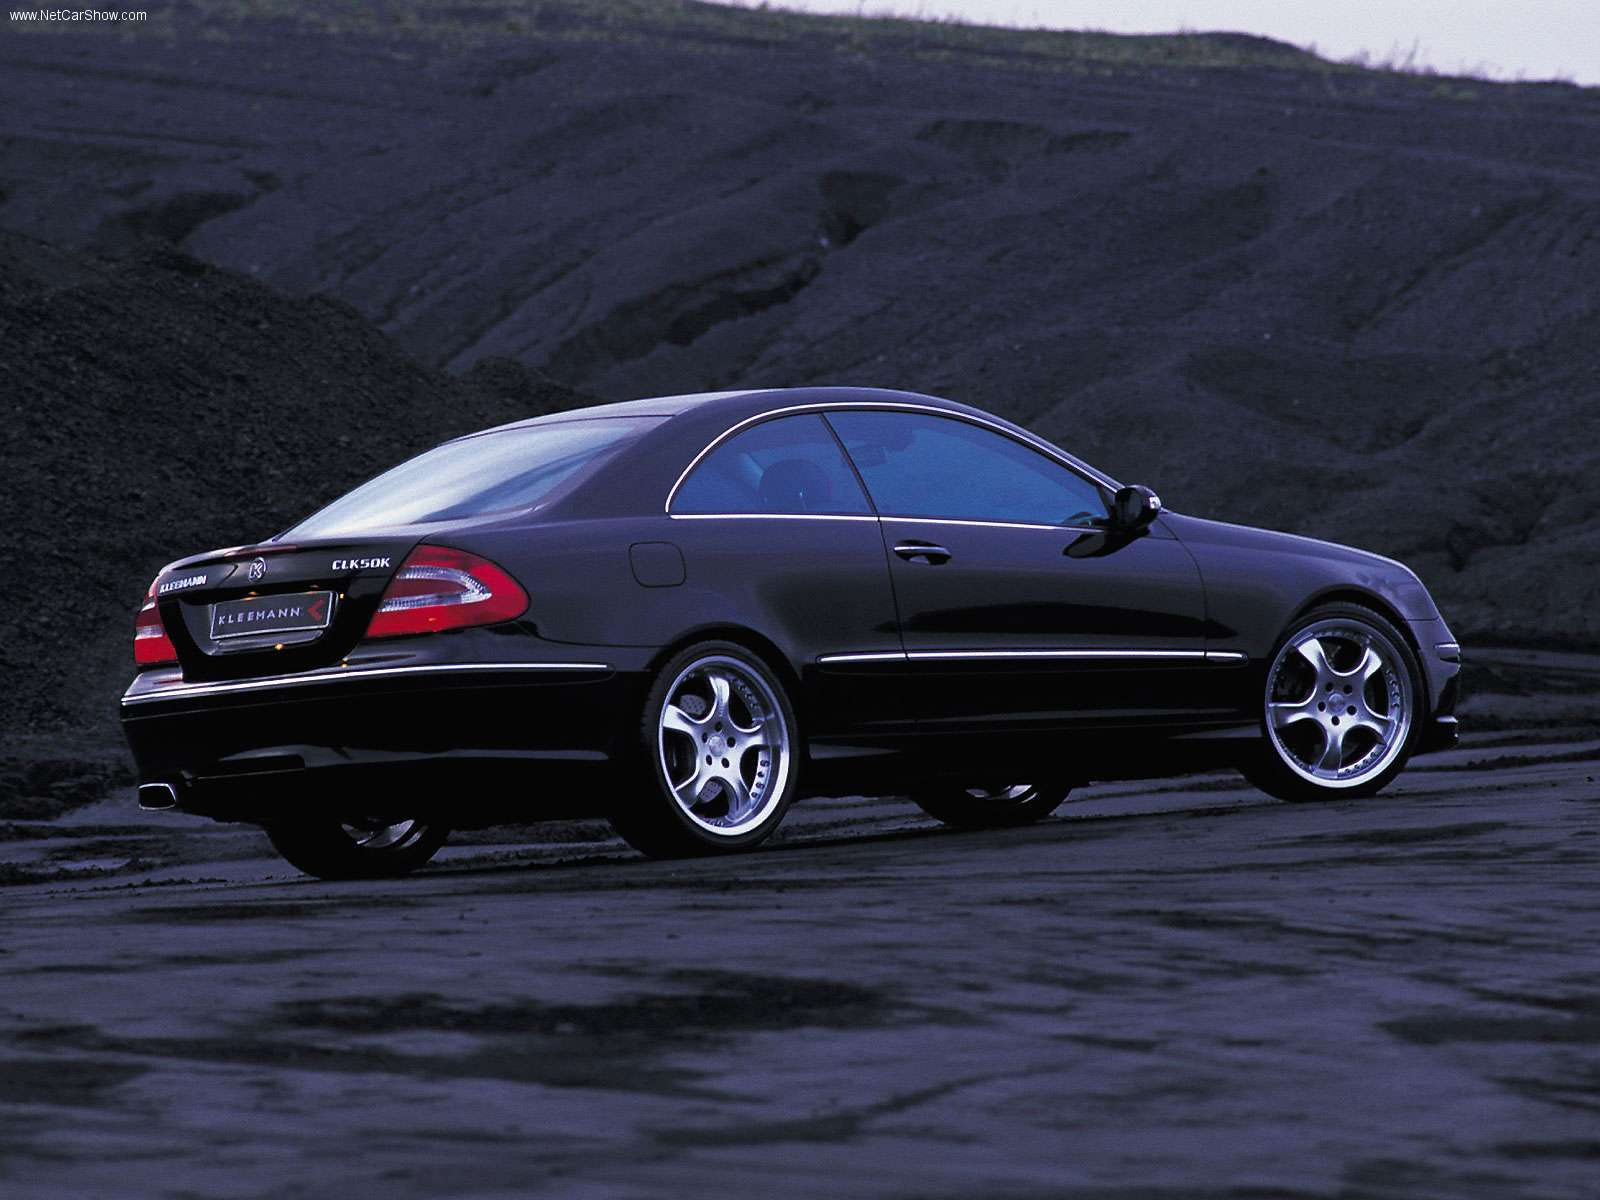 3dtuning of mercedes clk coupe 2004 unique on line car configurator for more than. Black Bedroom Furniture Sets. Home Design Ideas